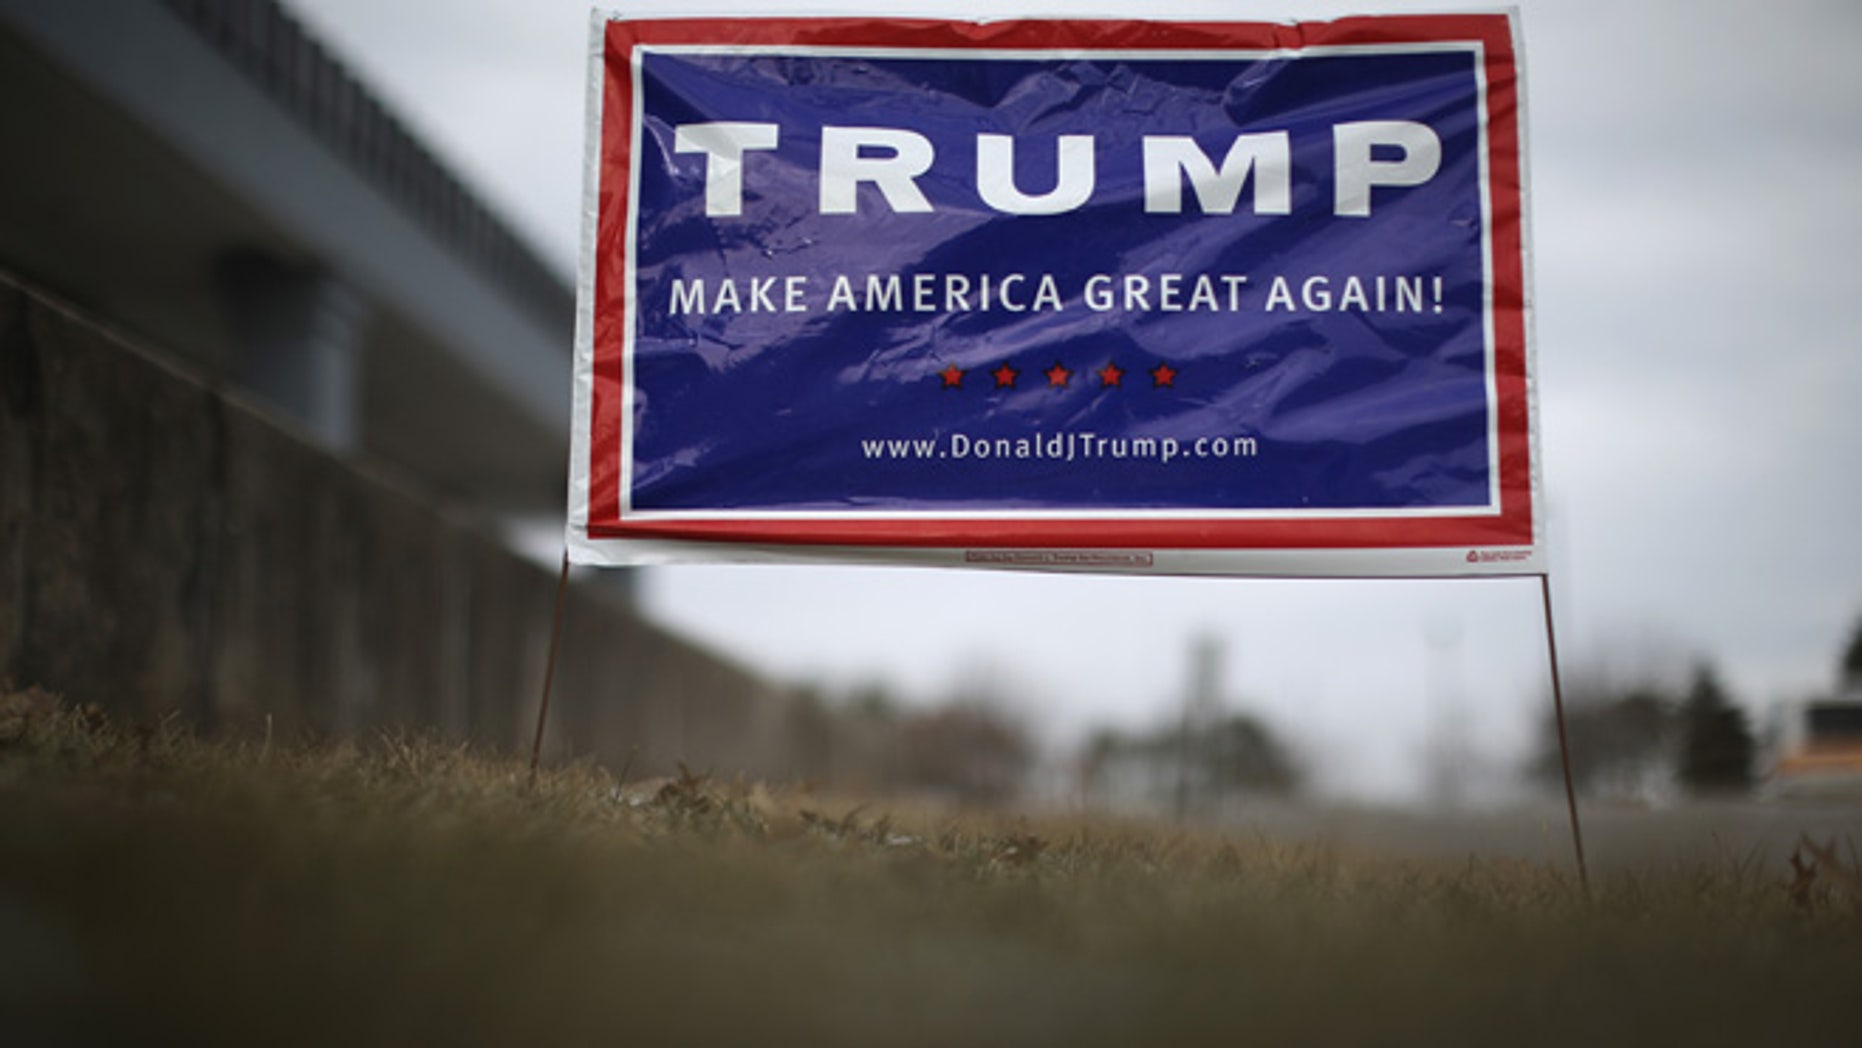 DES MOINES, IA - JANUARY 27:  A sign sits outside the Des Moines headquarters of Republican presidential candidate Donald Trump in West Des Moines on January 27, 2016 in Des Moines, Iowa. Politicians are crisscrossing the state looking for votes before the Iowa caucus takes place next week.  (Photo by Christopher Furlong/Getty Images)